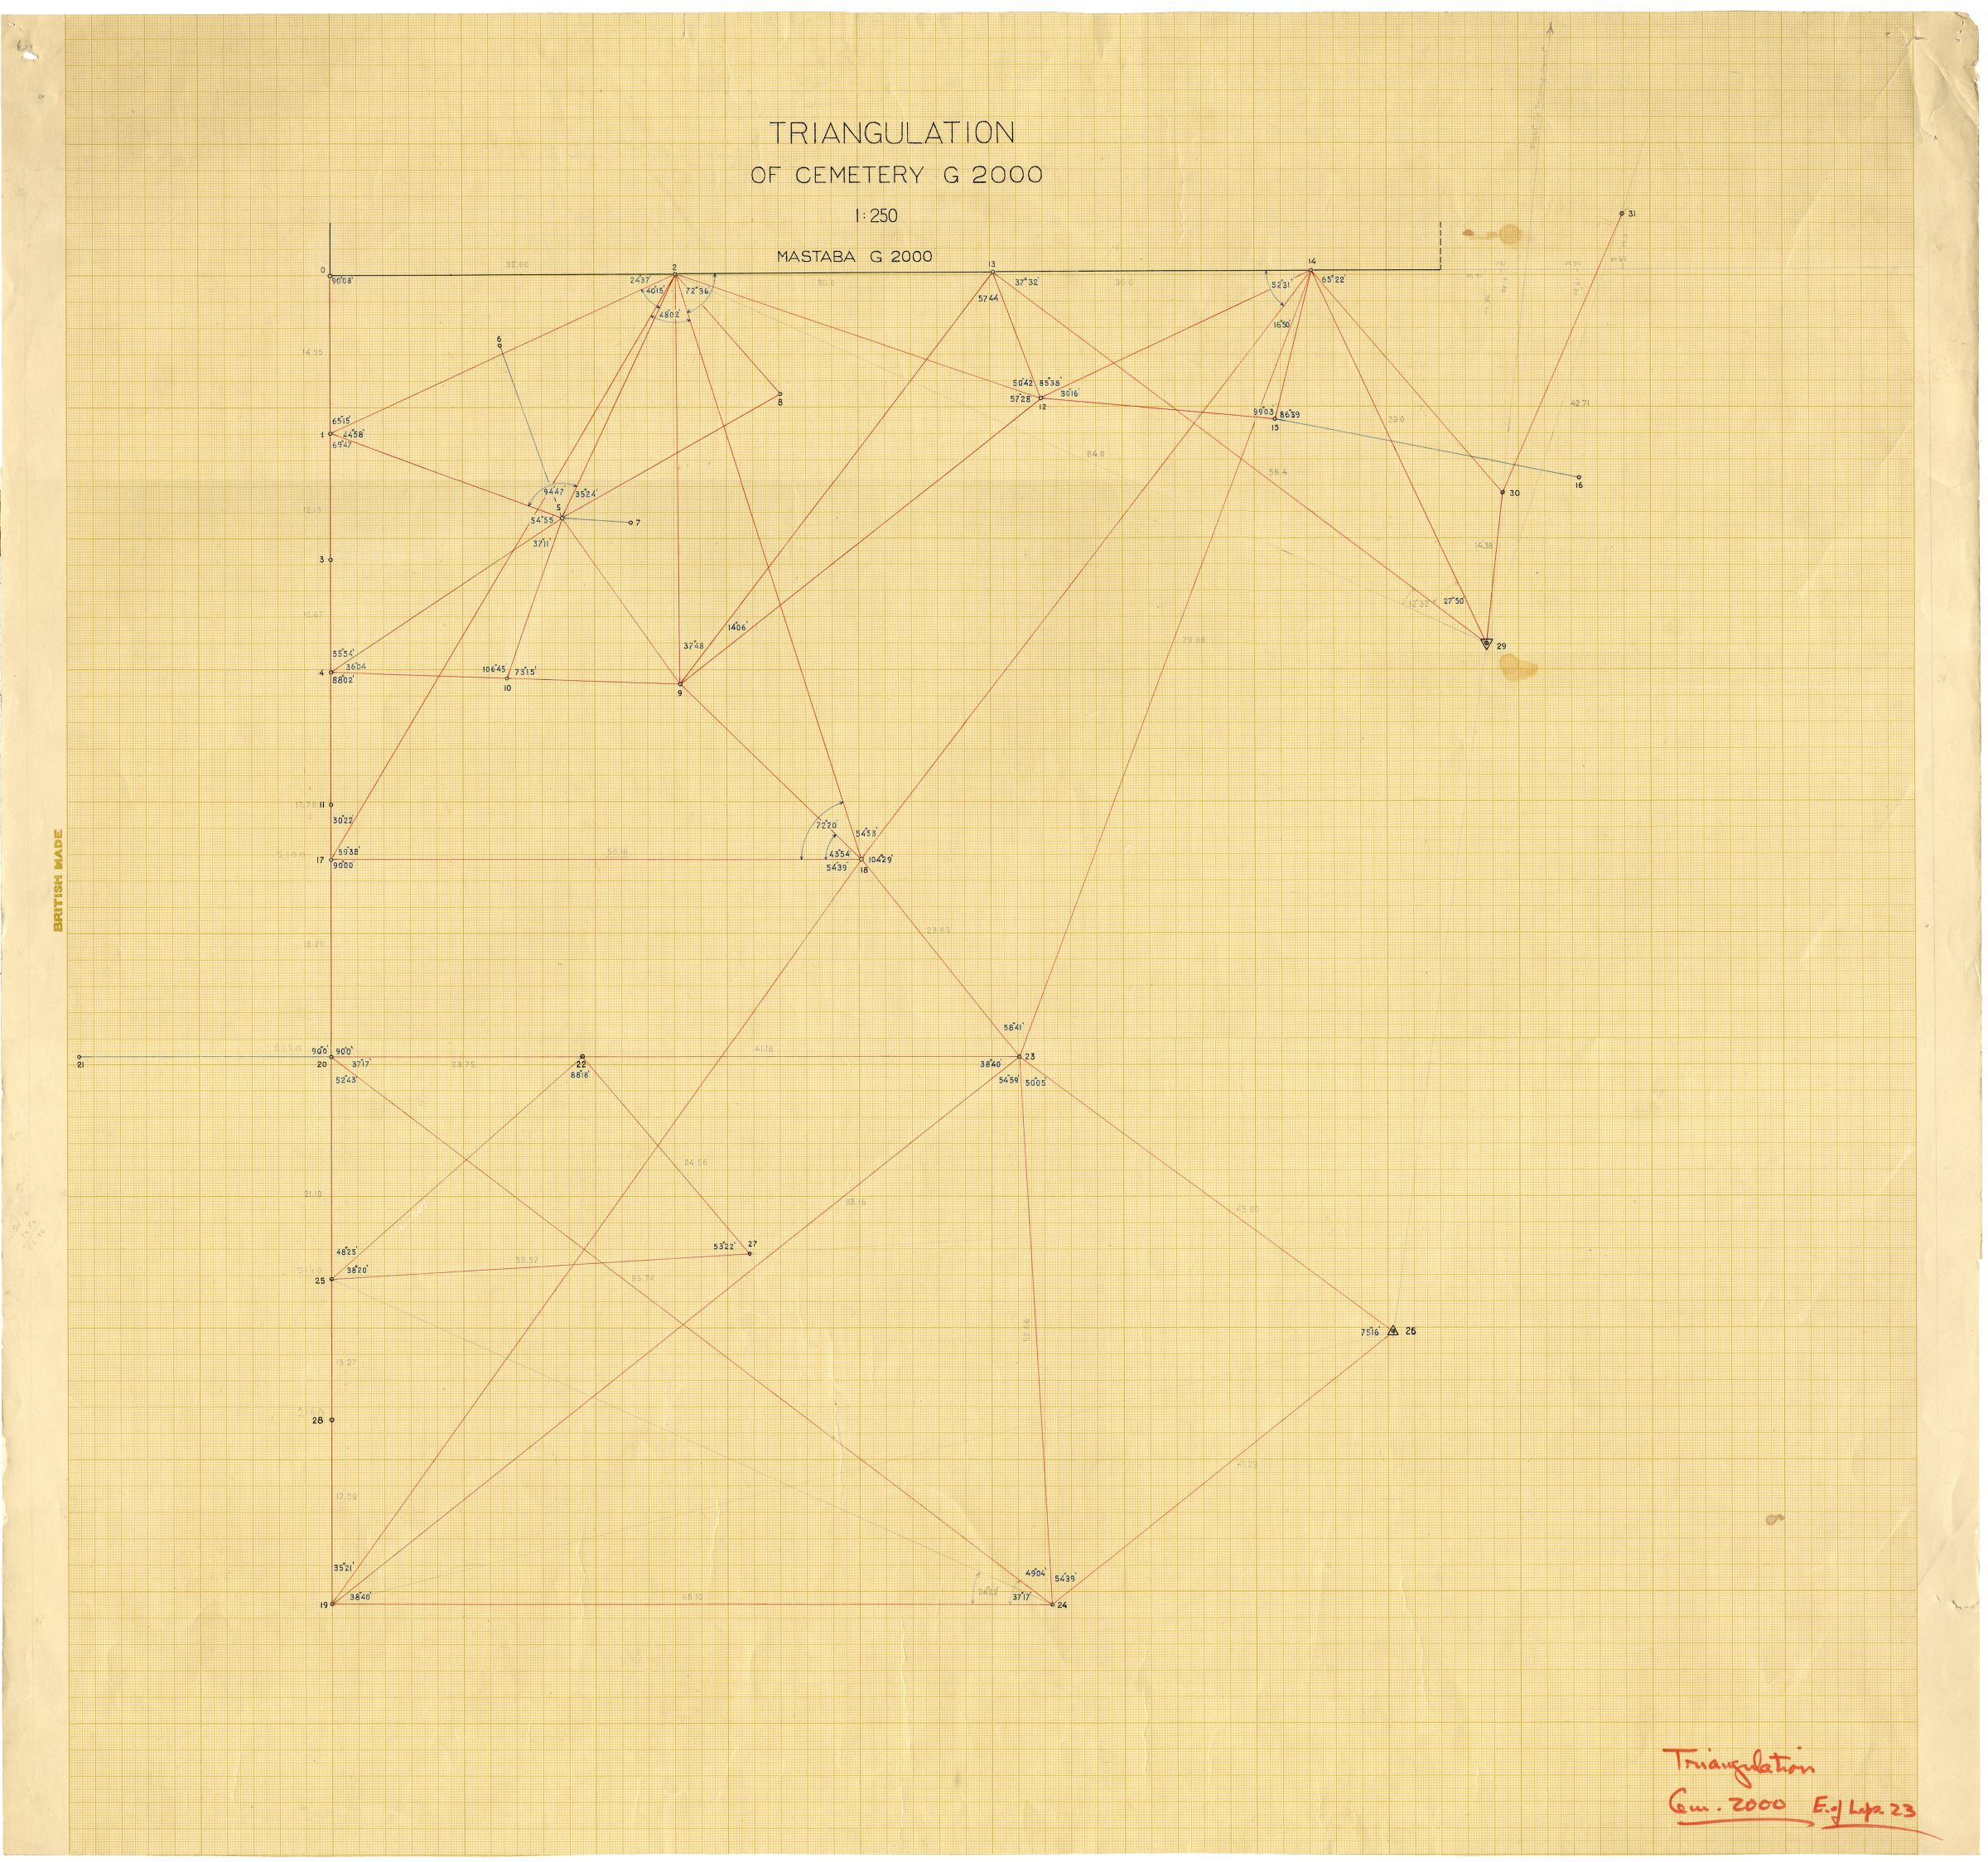 Maps and plans: Triangulation of Cemetery G 2000, E of Lepsius 23